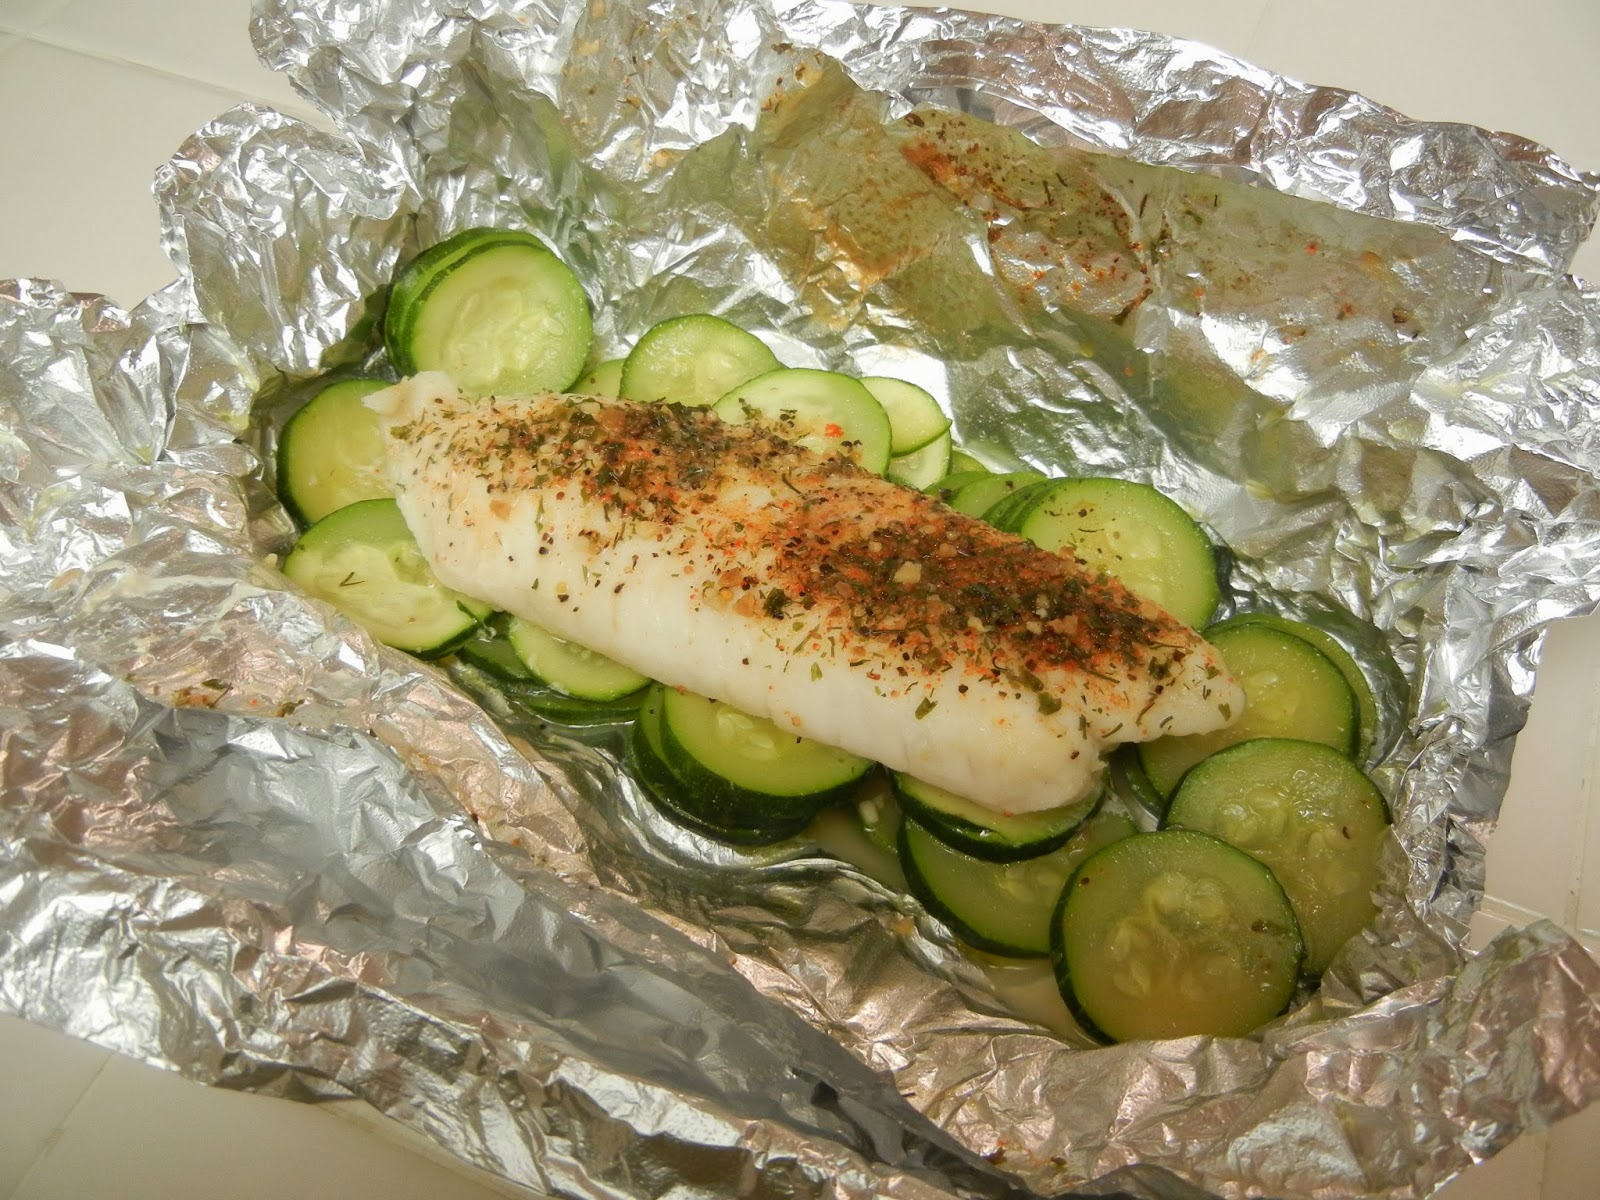 Tilapia+Fish+Foil+Packet+Dinner Weight Loss Recipes A day in my pouch